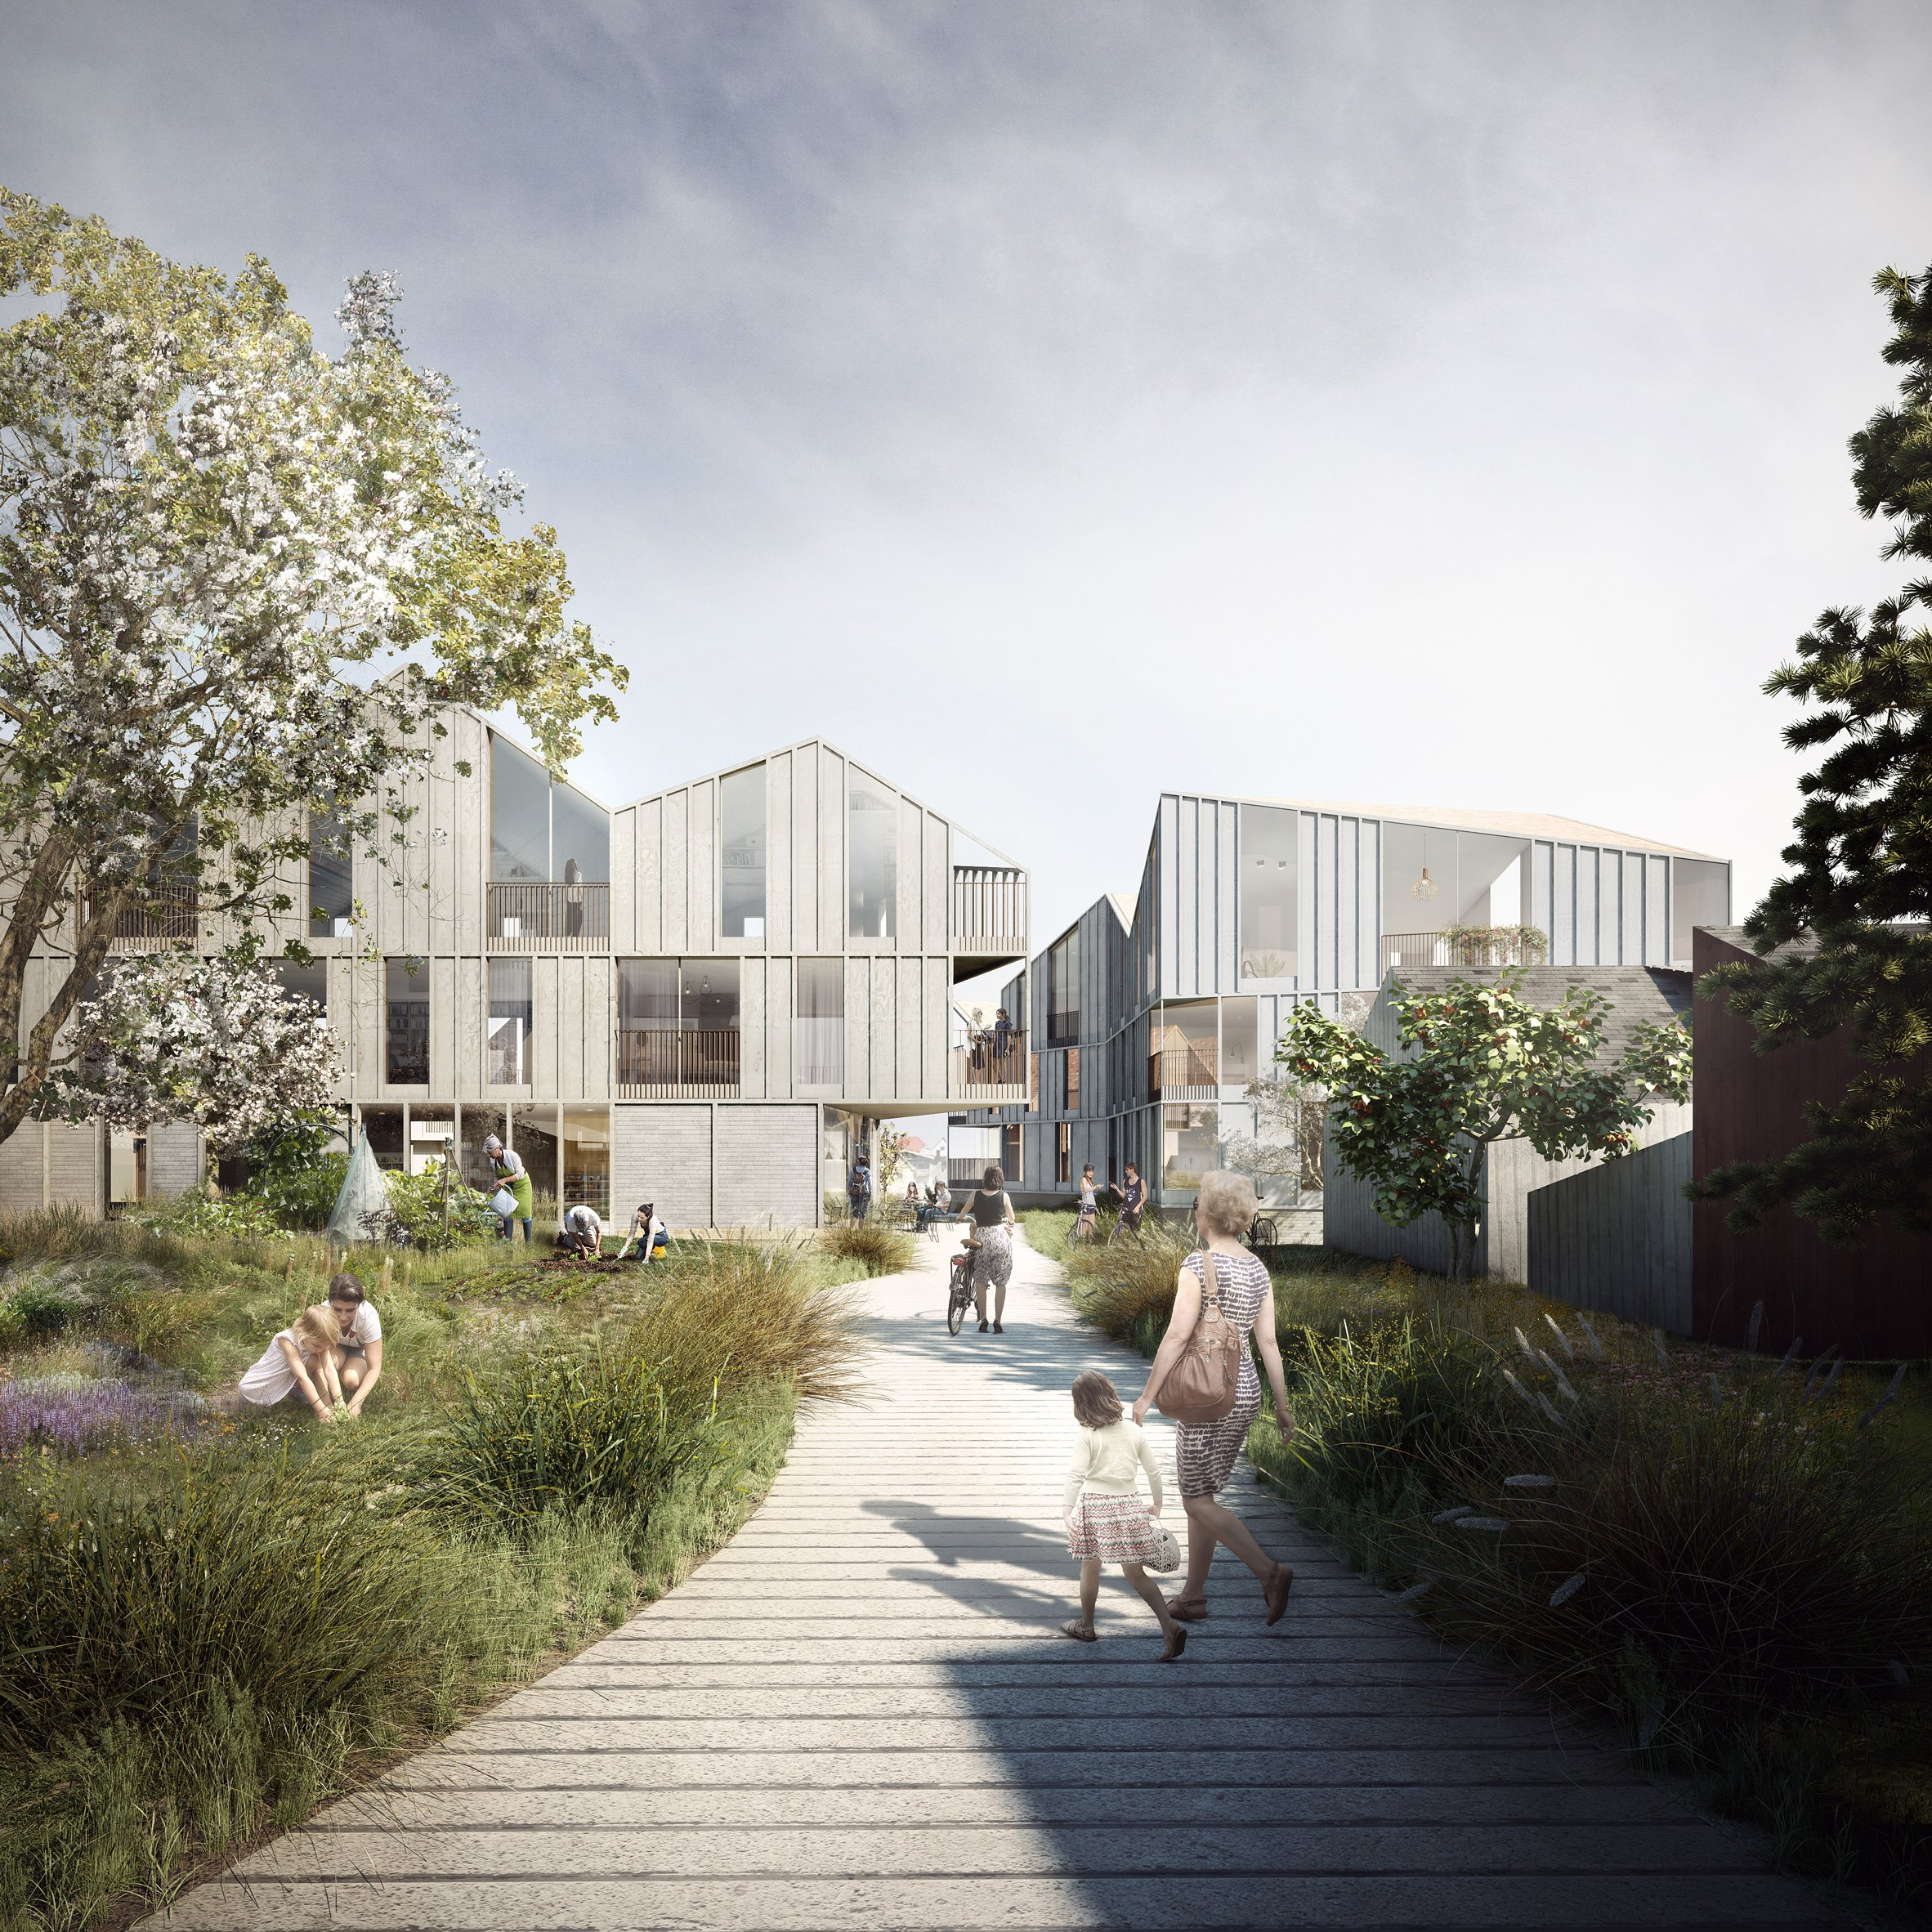 Charming Haptic Designs Elderly Housing For Norway To Encourage Residents To  Socialise Part 27